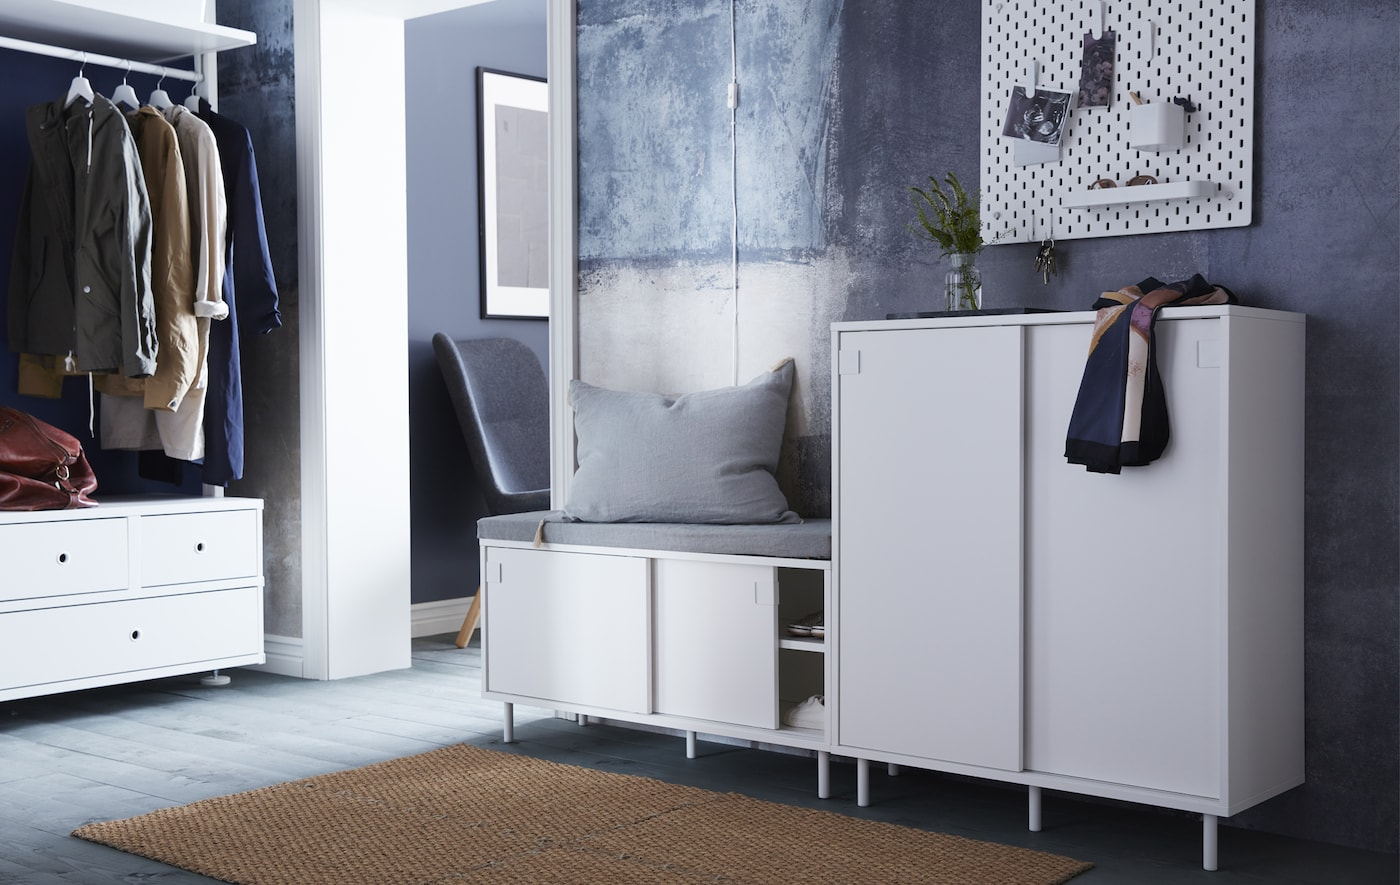 The white MACKAPÄR shoe cabinet in this hall has space-saving sliding doors and storage compartments.